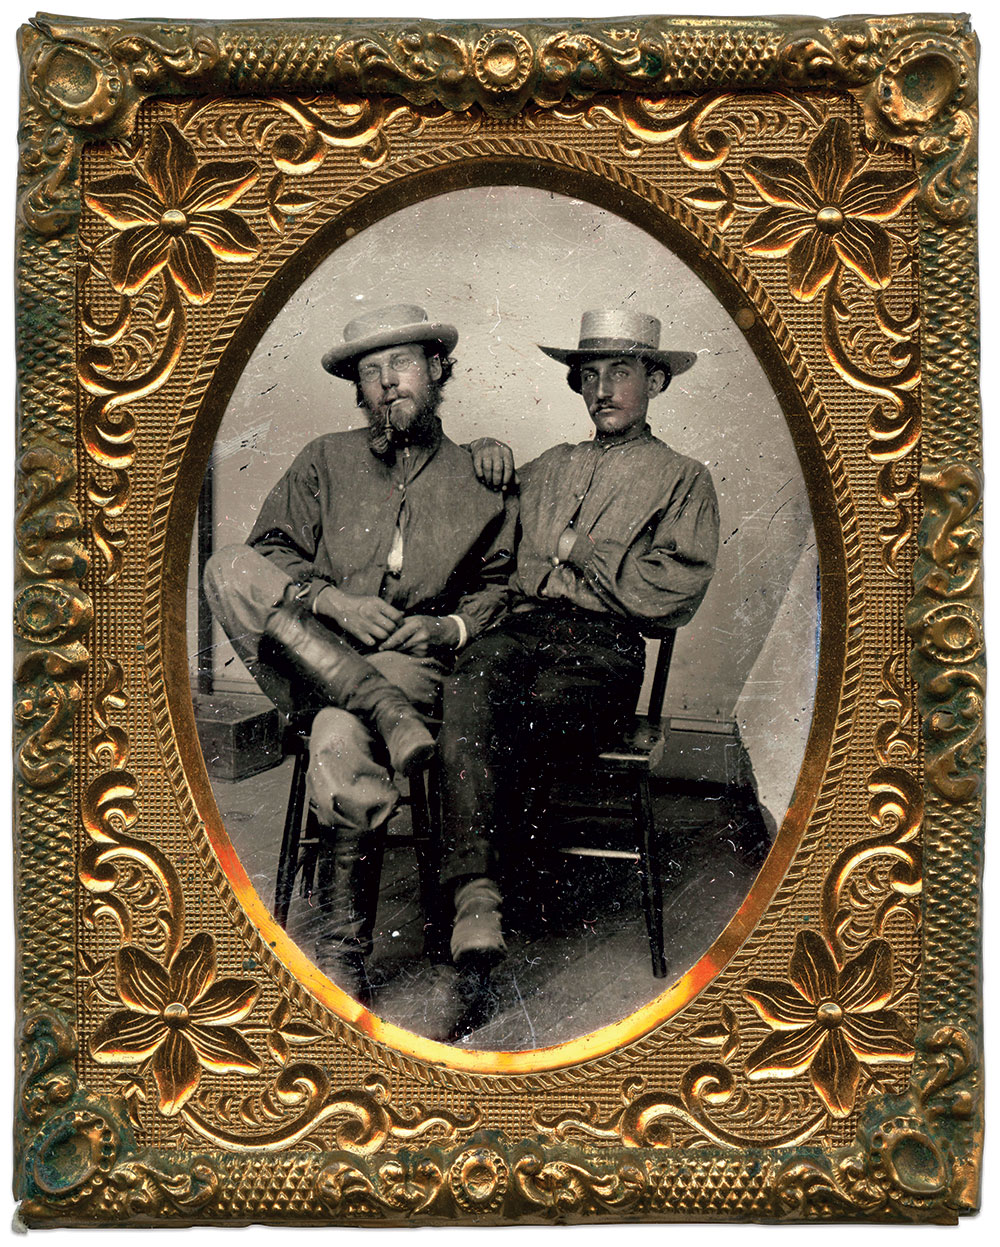 Ellsworth, right, with Henry S. Bethards of the 14th Kentucky Cavalry. Dave Batalo Collection.